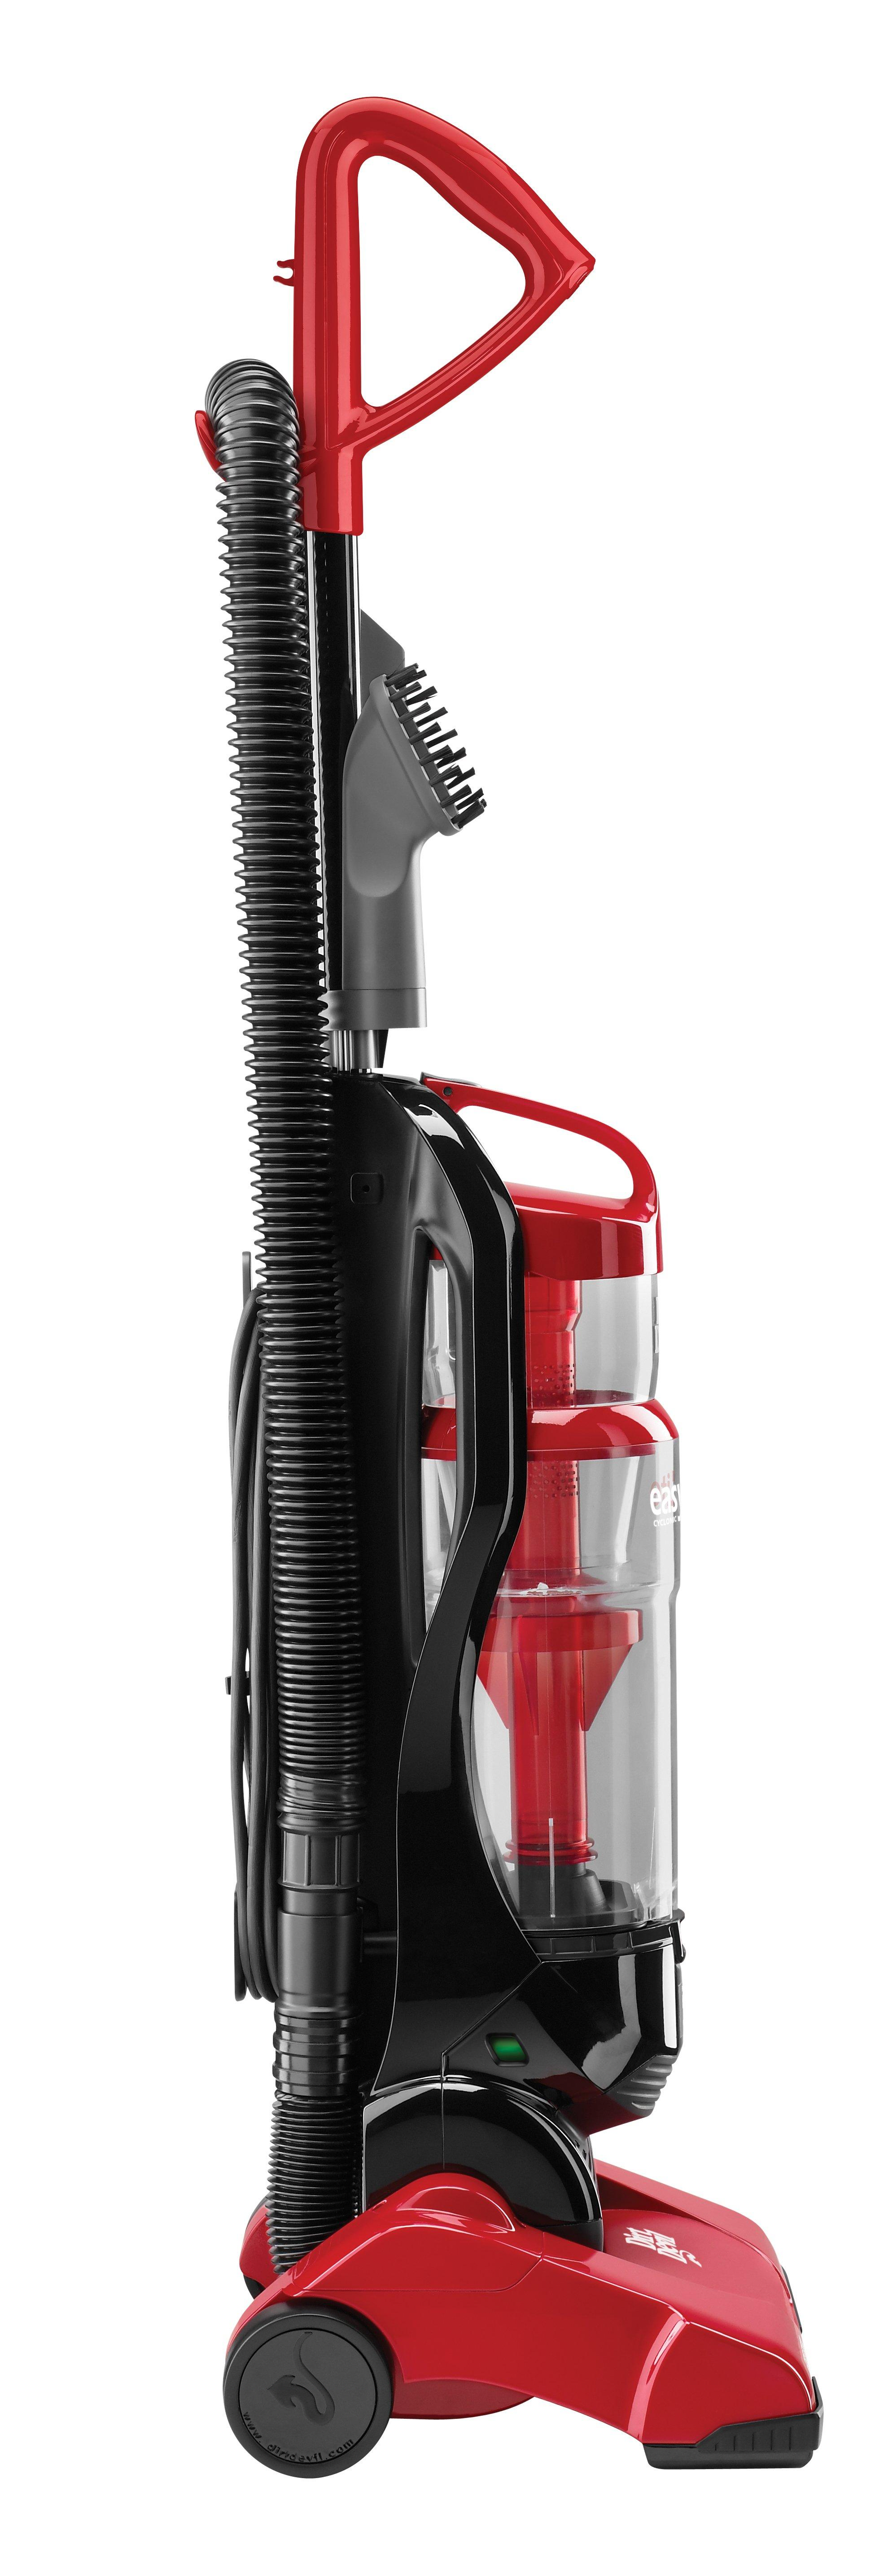 Dirt Devil Easy Lite Cyclonic Quick Vac Bagless Upright Vacuum Cleaner, UD20005